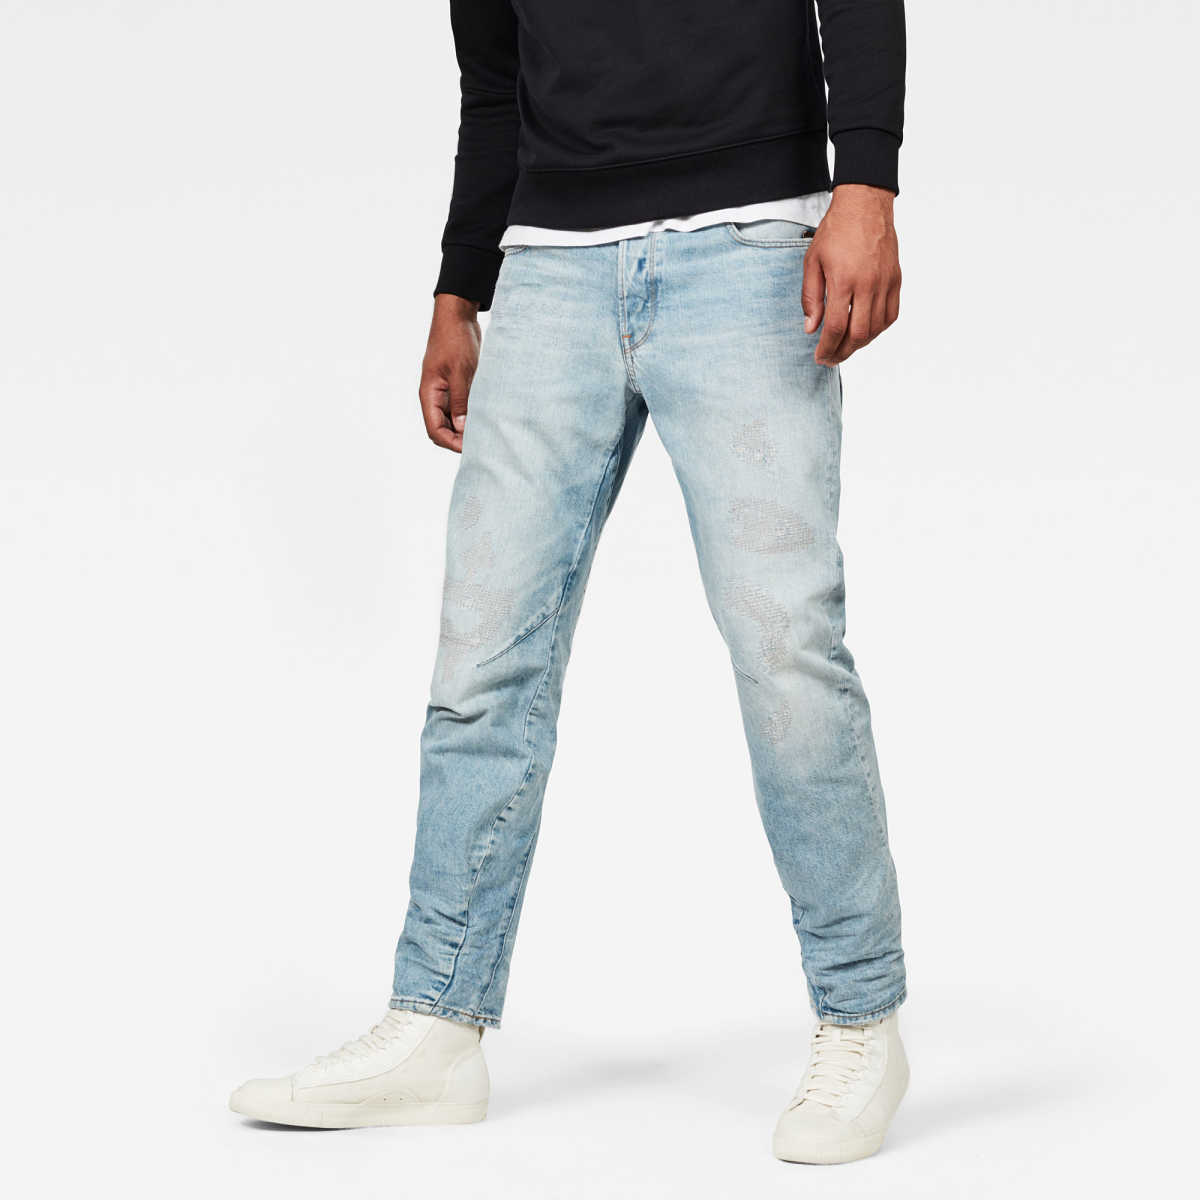 G-Star Male Arc 3d Relaxed Tapered Jeans Relaxed Light Blue USA - GOOFASH - Mens JEANS